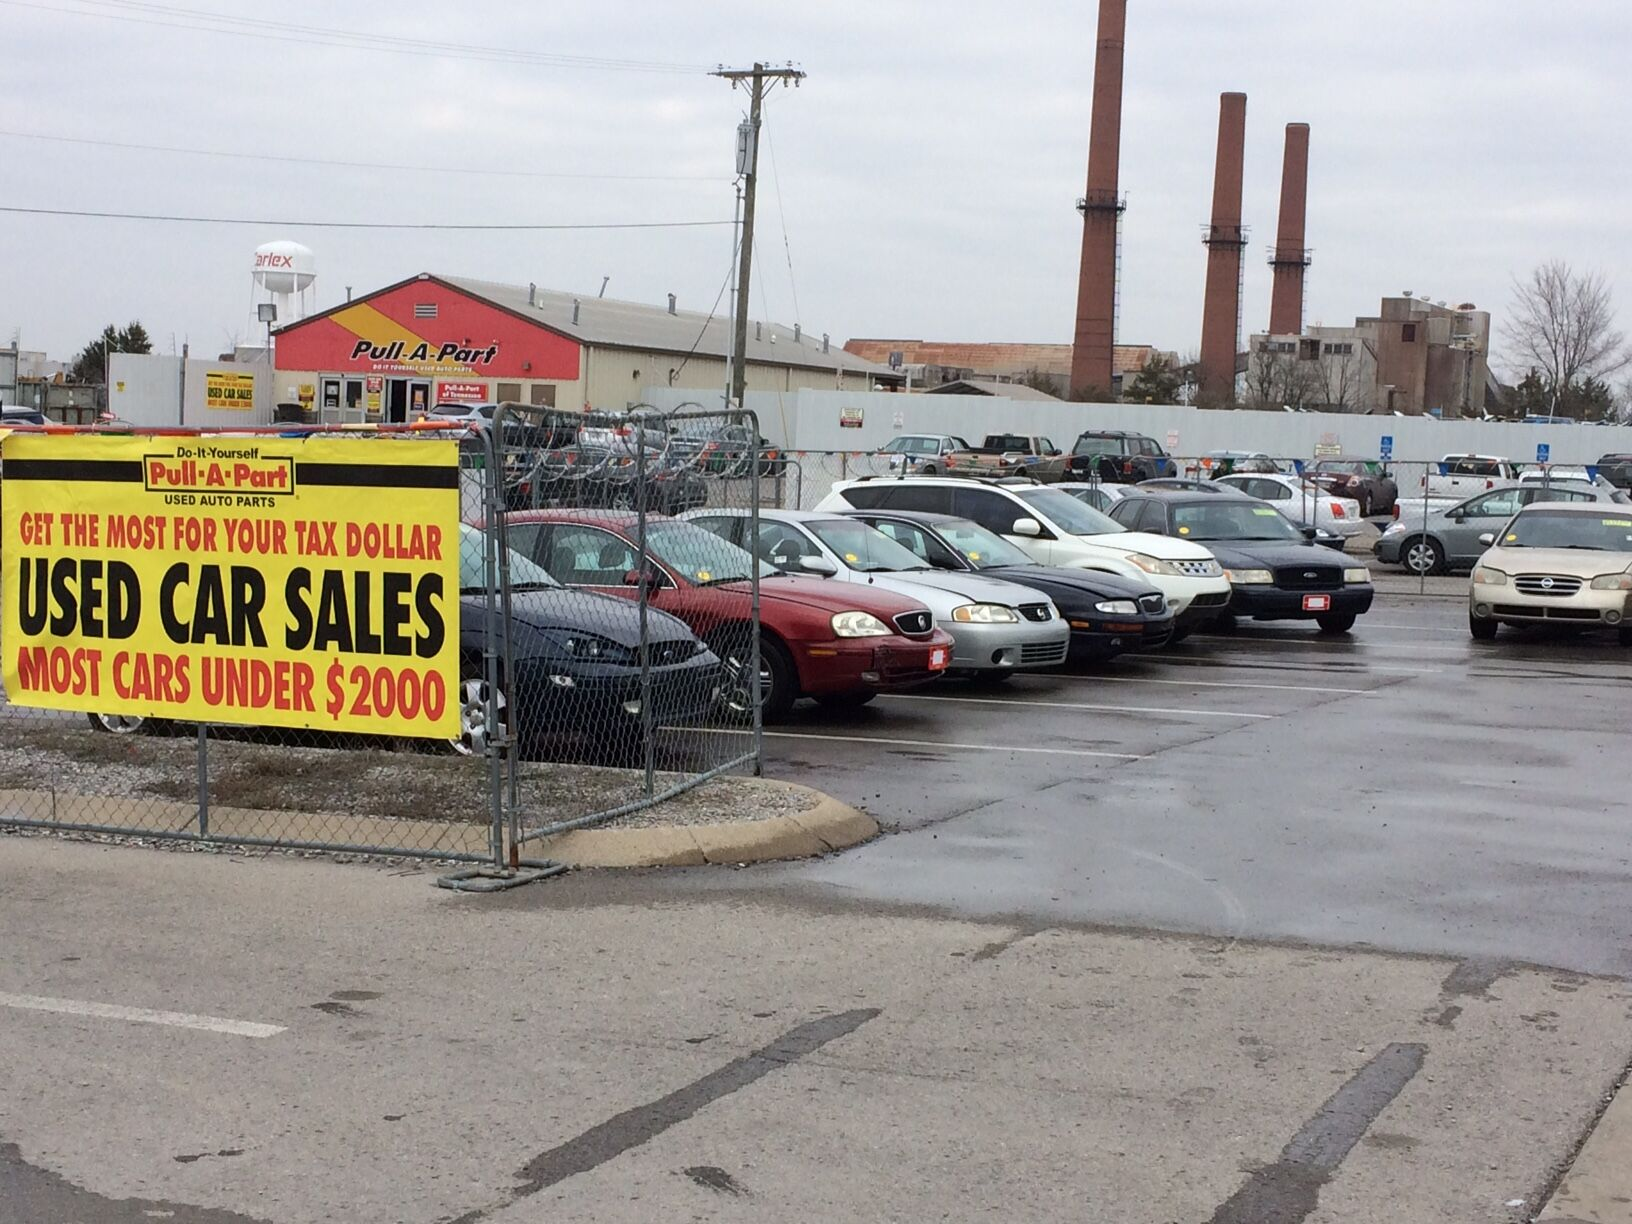 Purchase a great used car at Pull-A-Part. Most cars under $2,000.